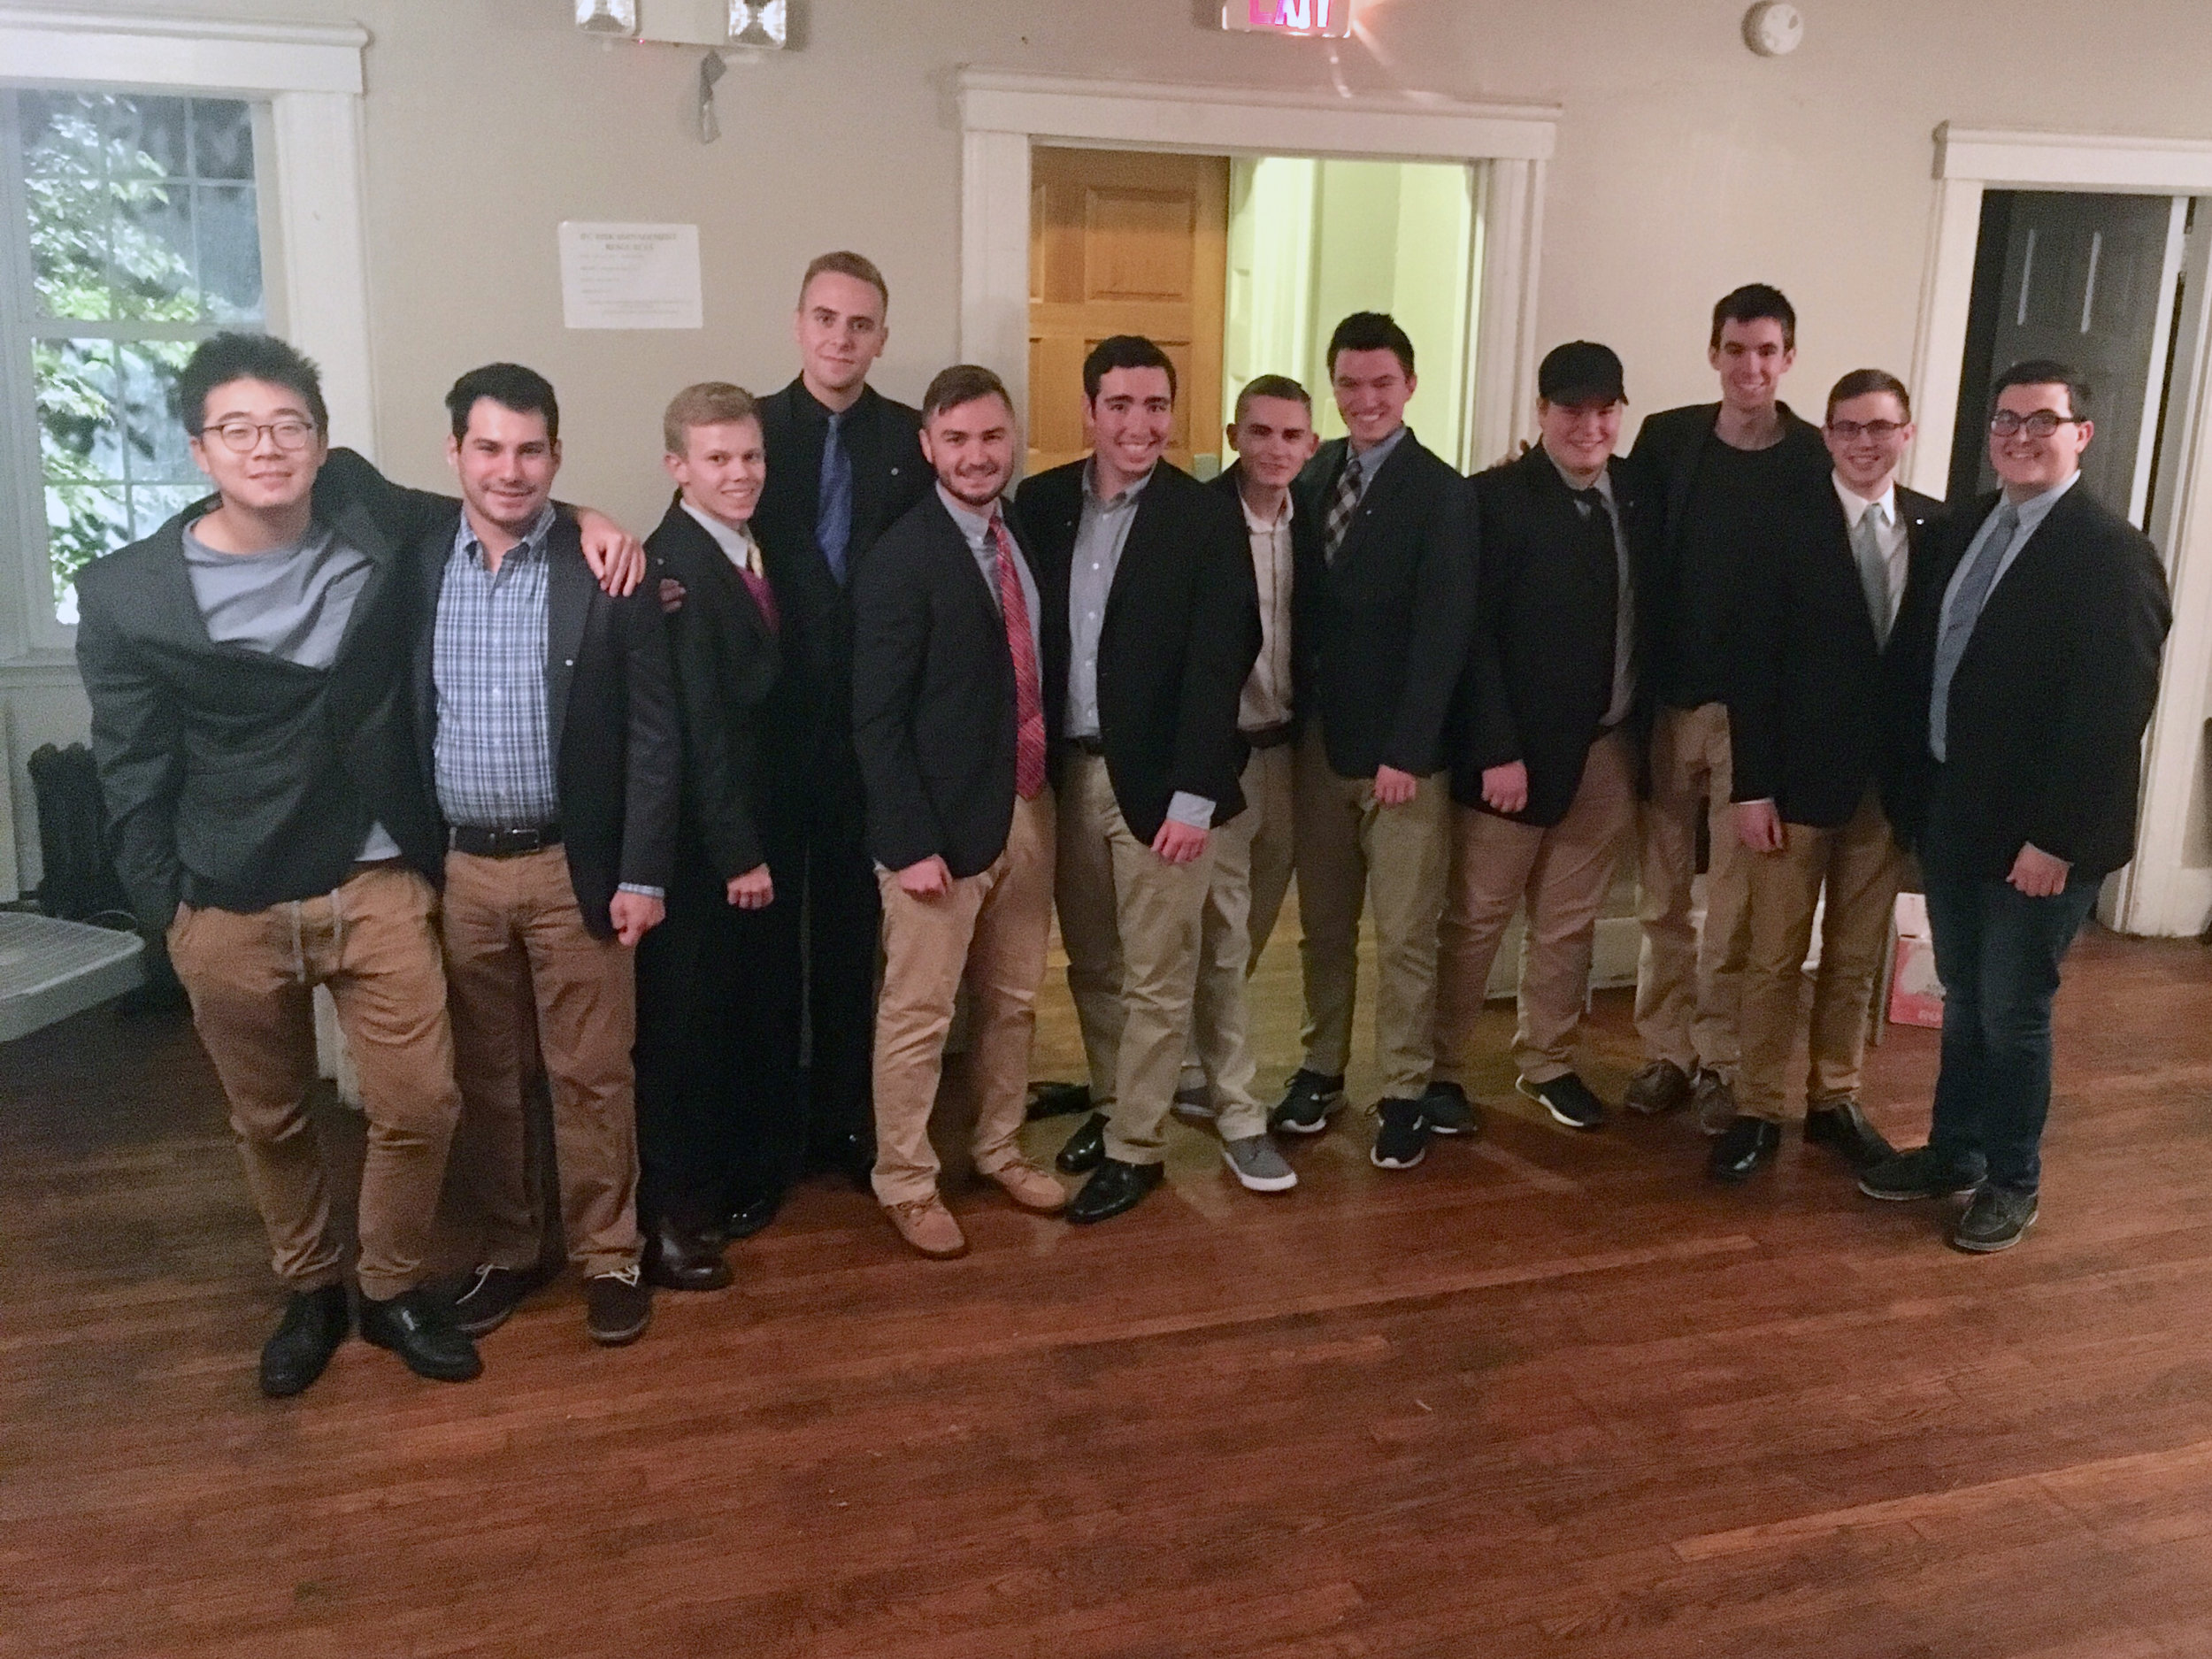 2018 Fall Pledge Class with thier Big Brothers - (from left to right): Marion and Jeremy, Jake and Carson, Nate and Rob, Adam and Trey, Nick and Josh, and lastly John and Mike.